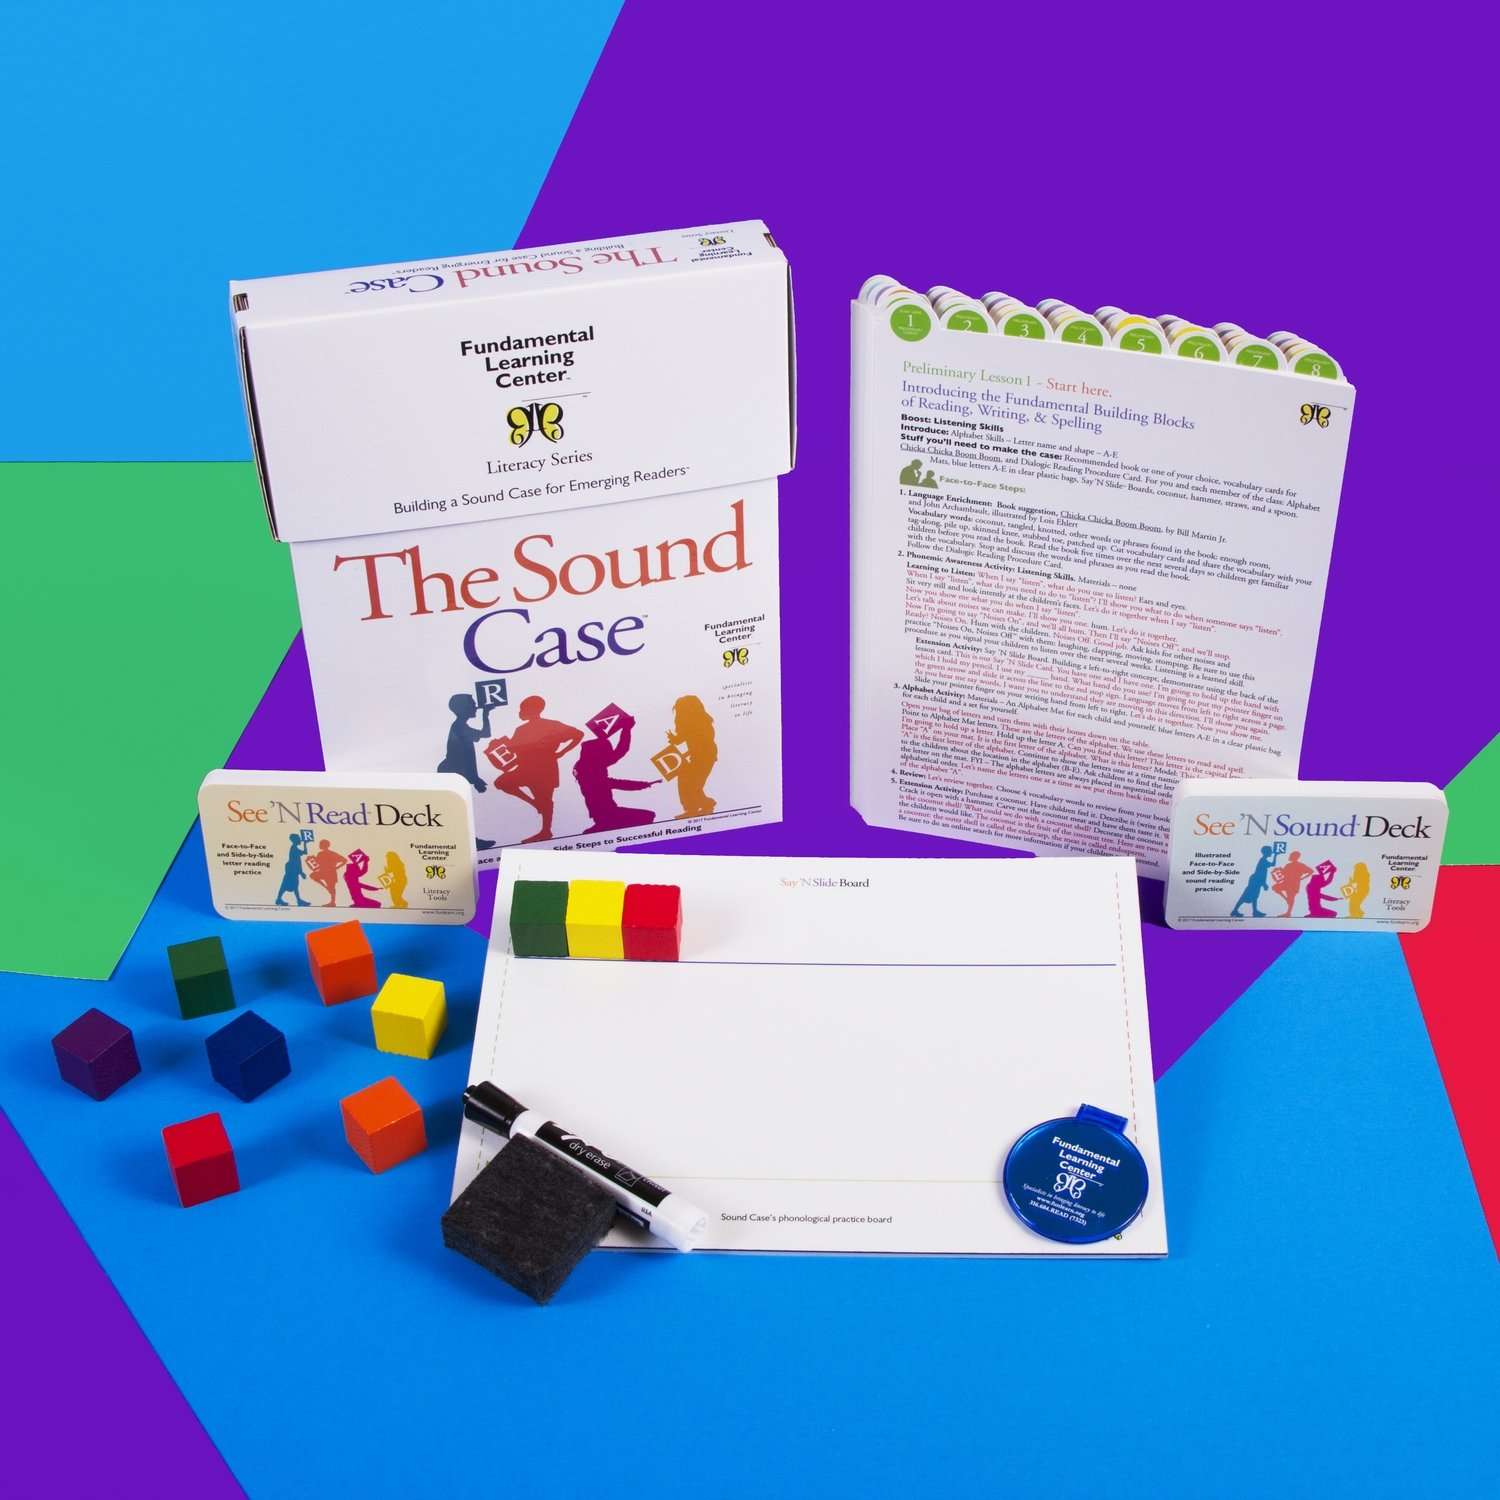 The Sound Case™ — Featuring Online Training